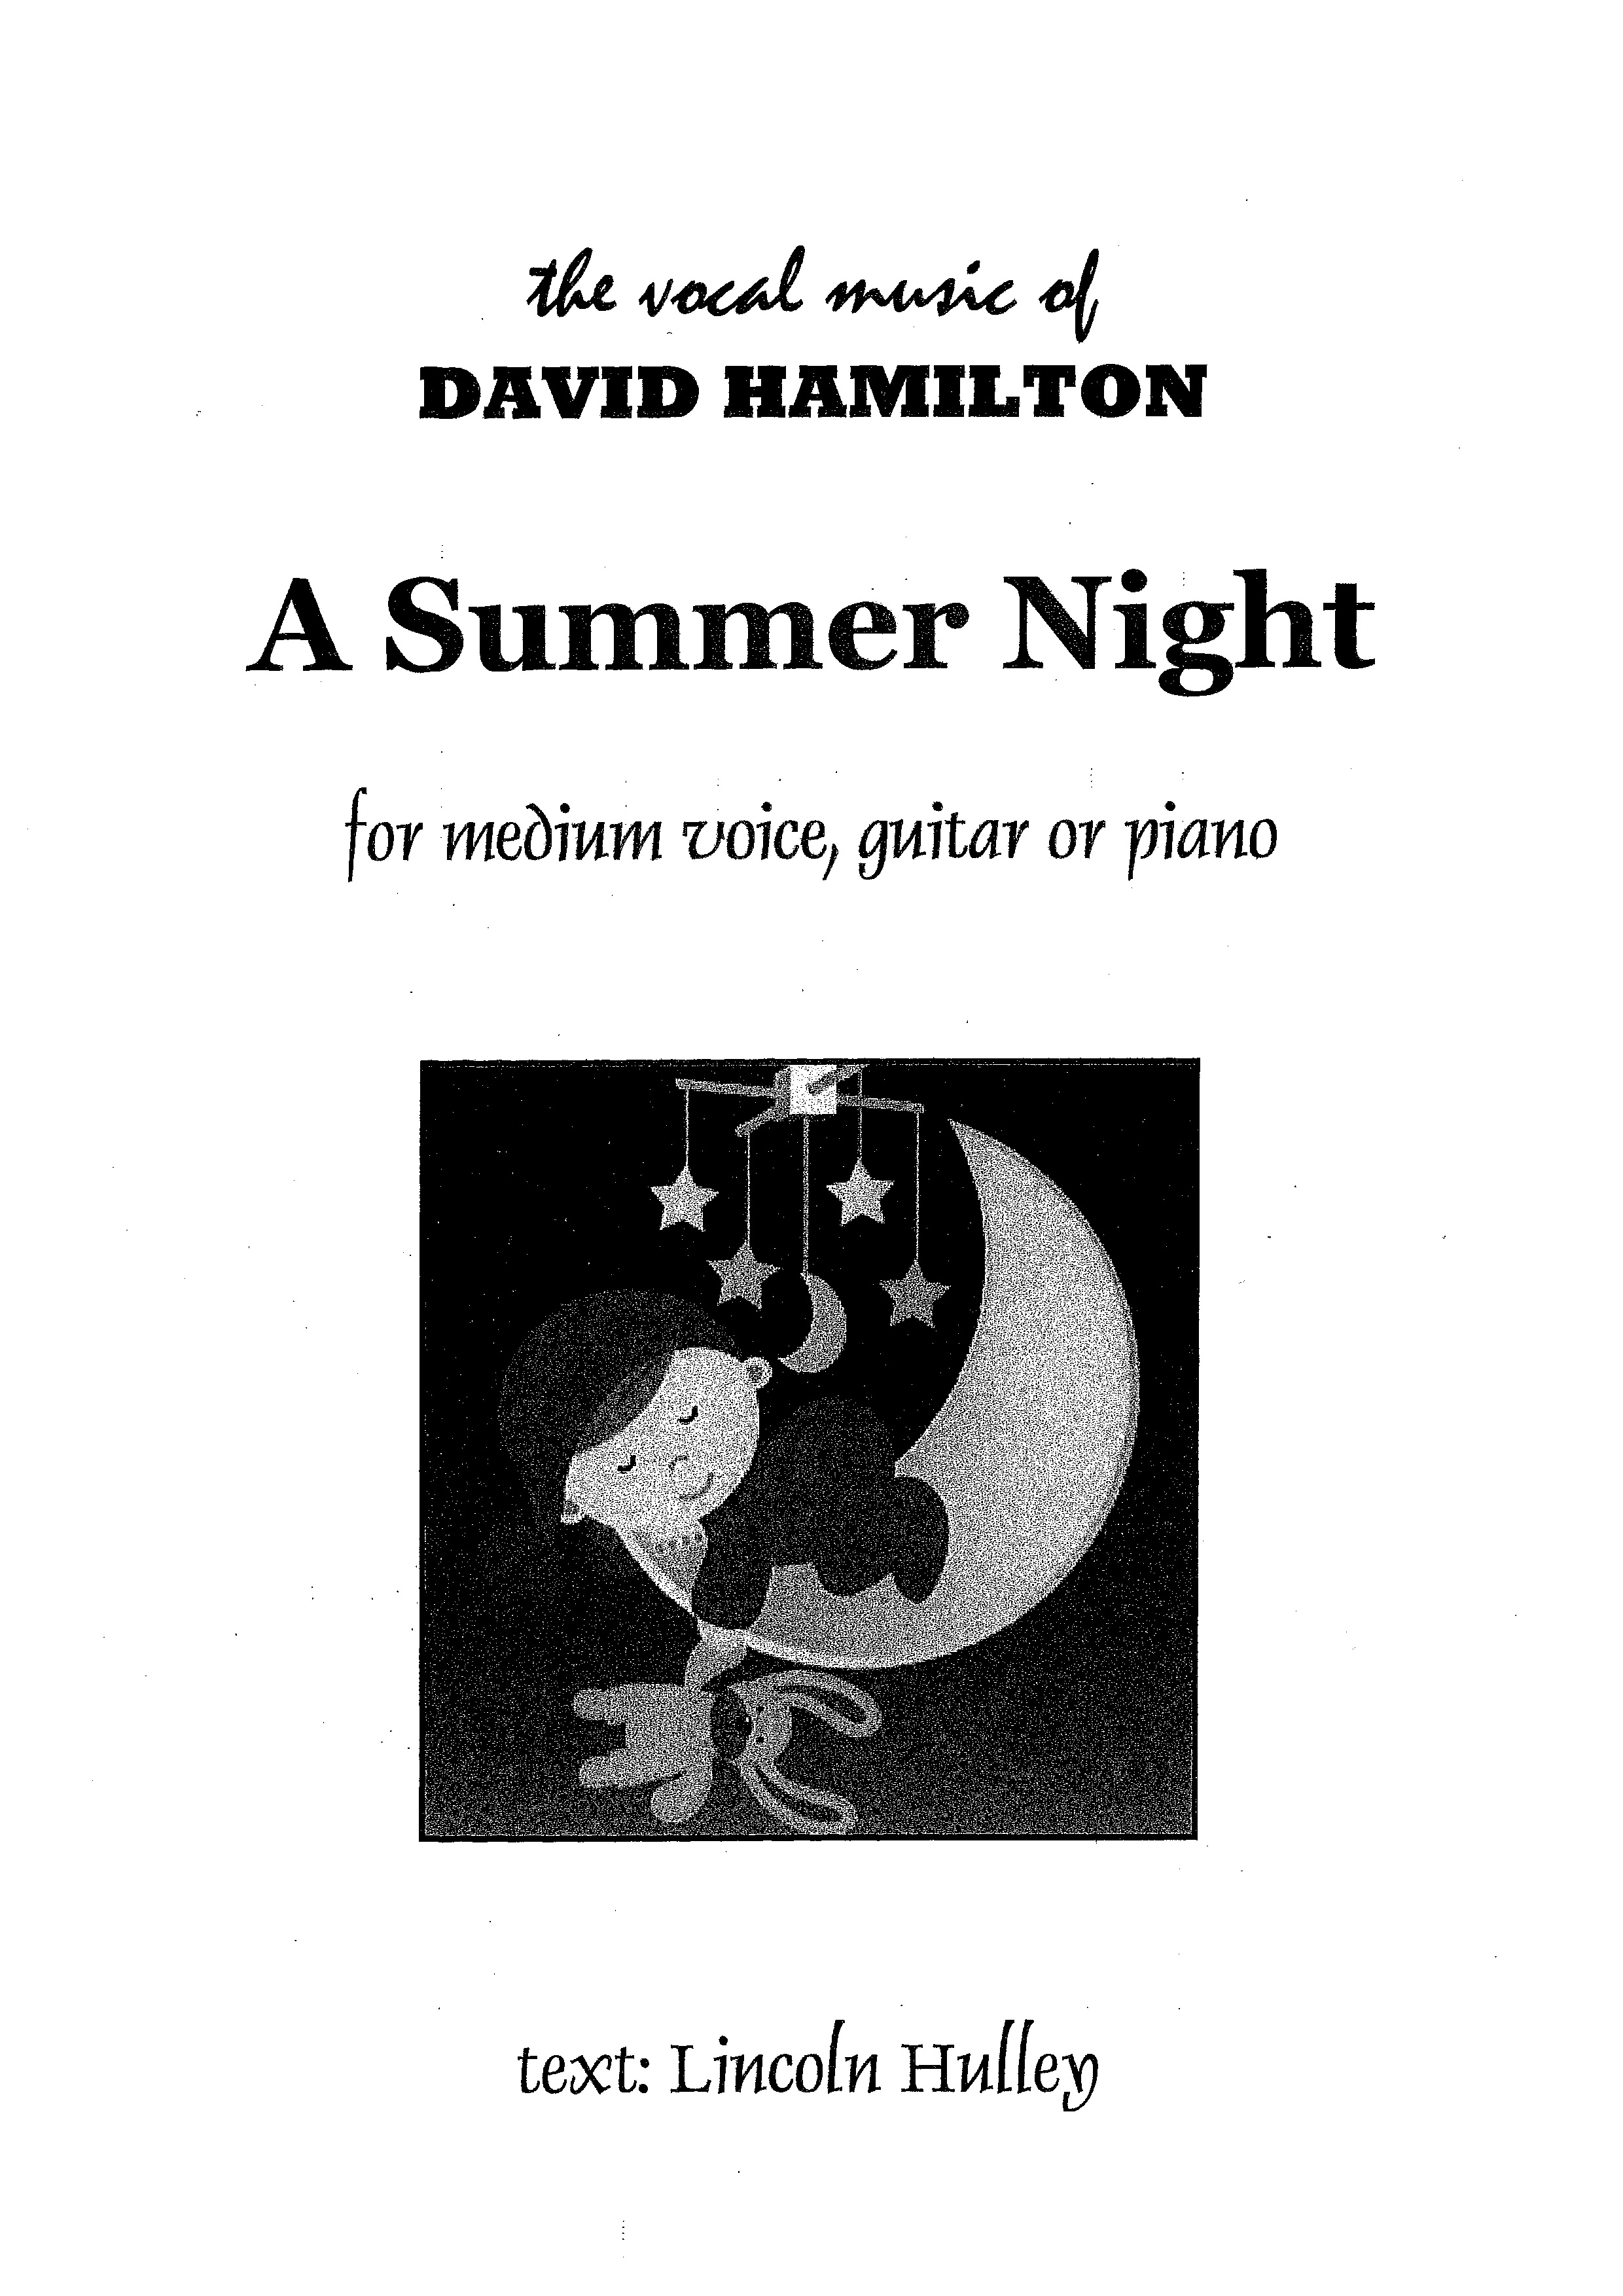 David Hamilton: A Summer Night - hardcopy SCORE and PART